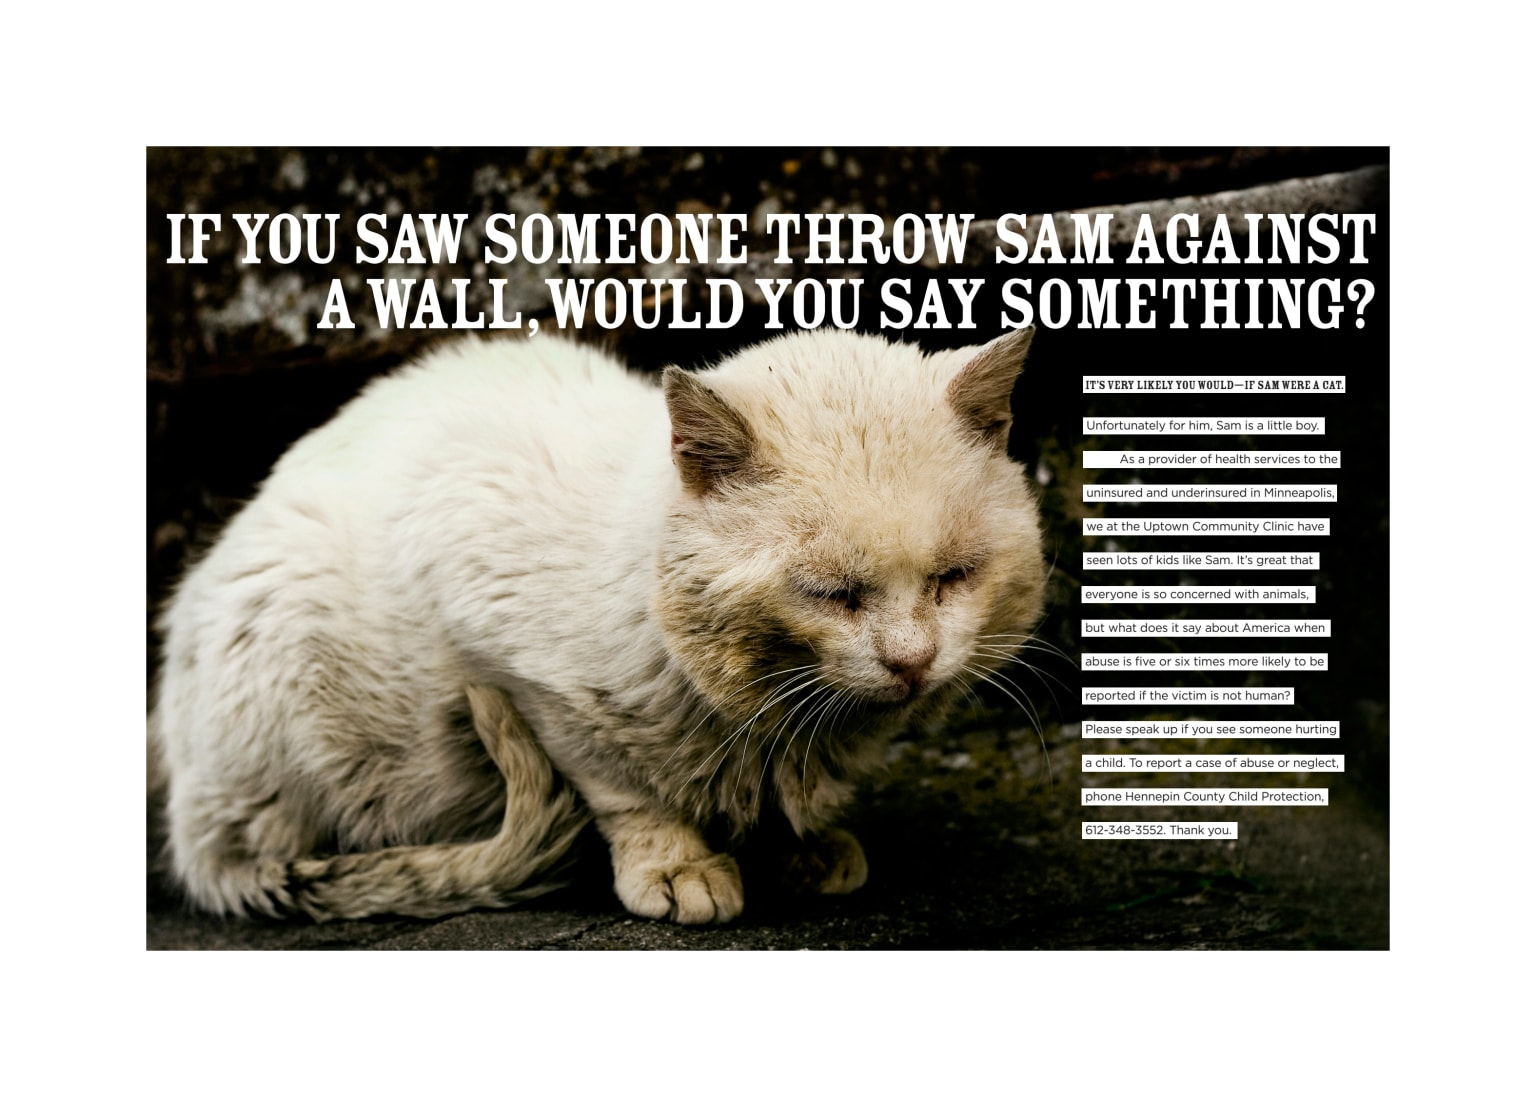 Report child abuse just like you would report animal abuse.